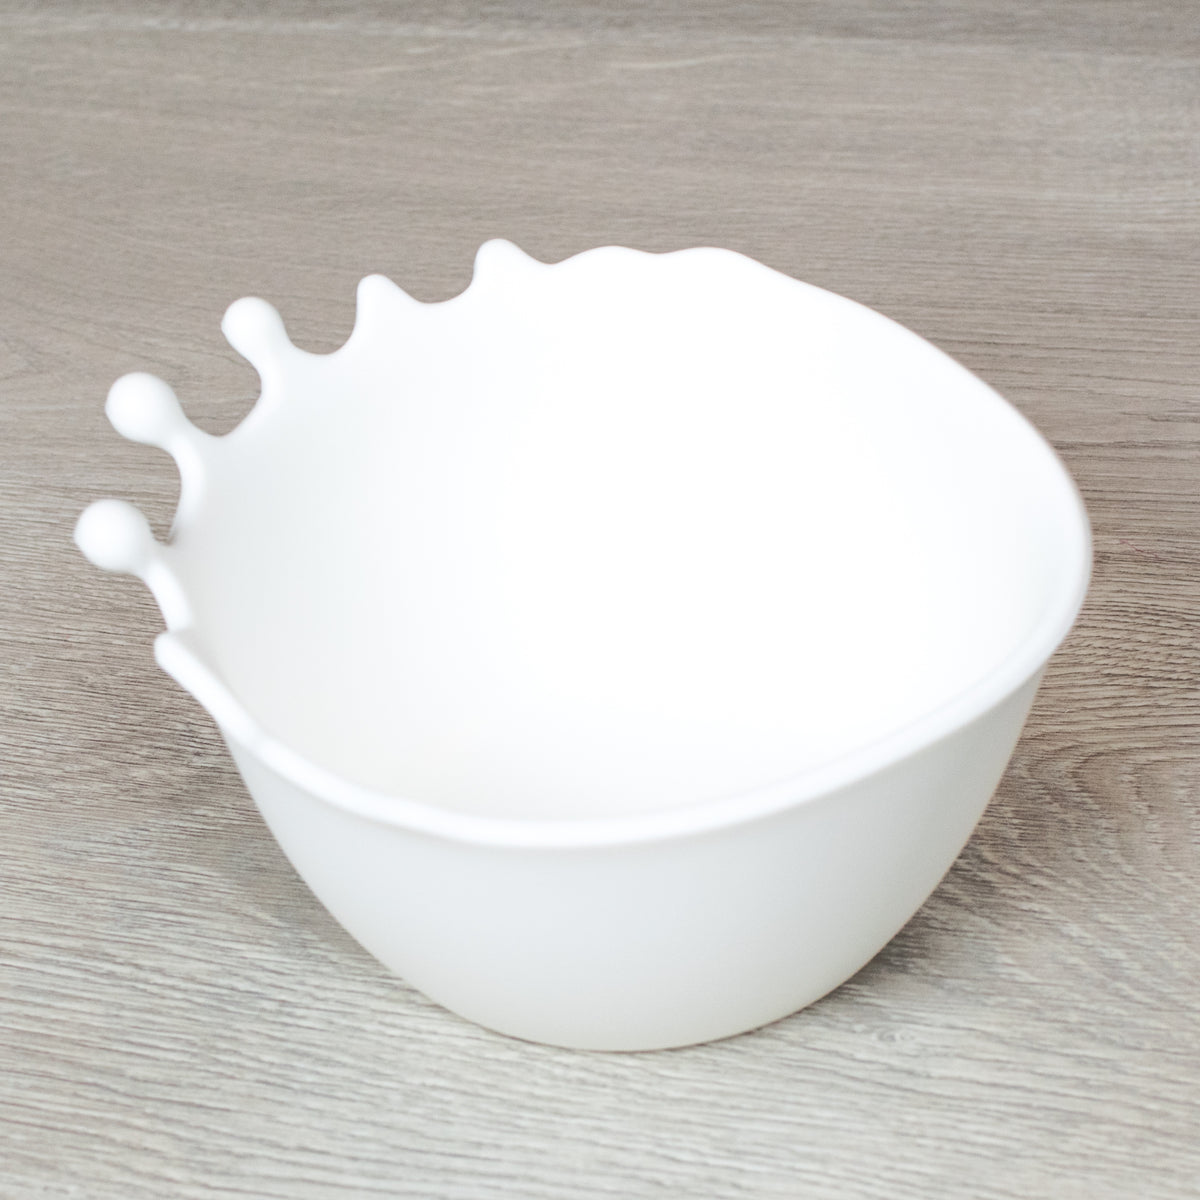 Milk Splash Cereal Bowl